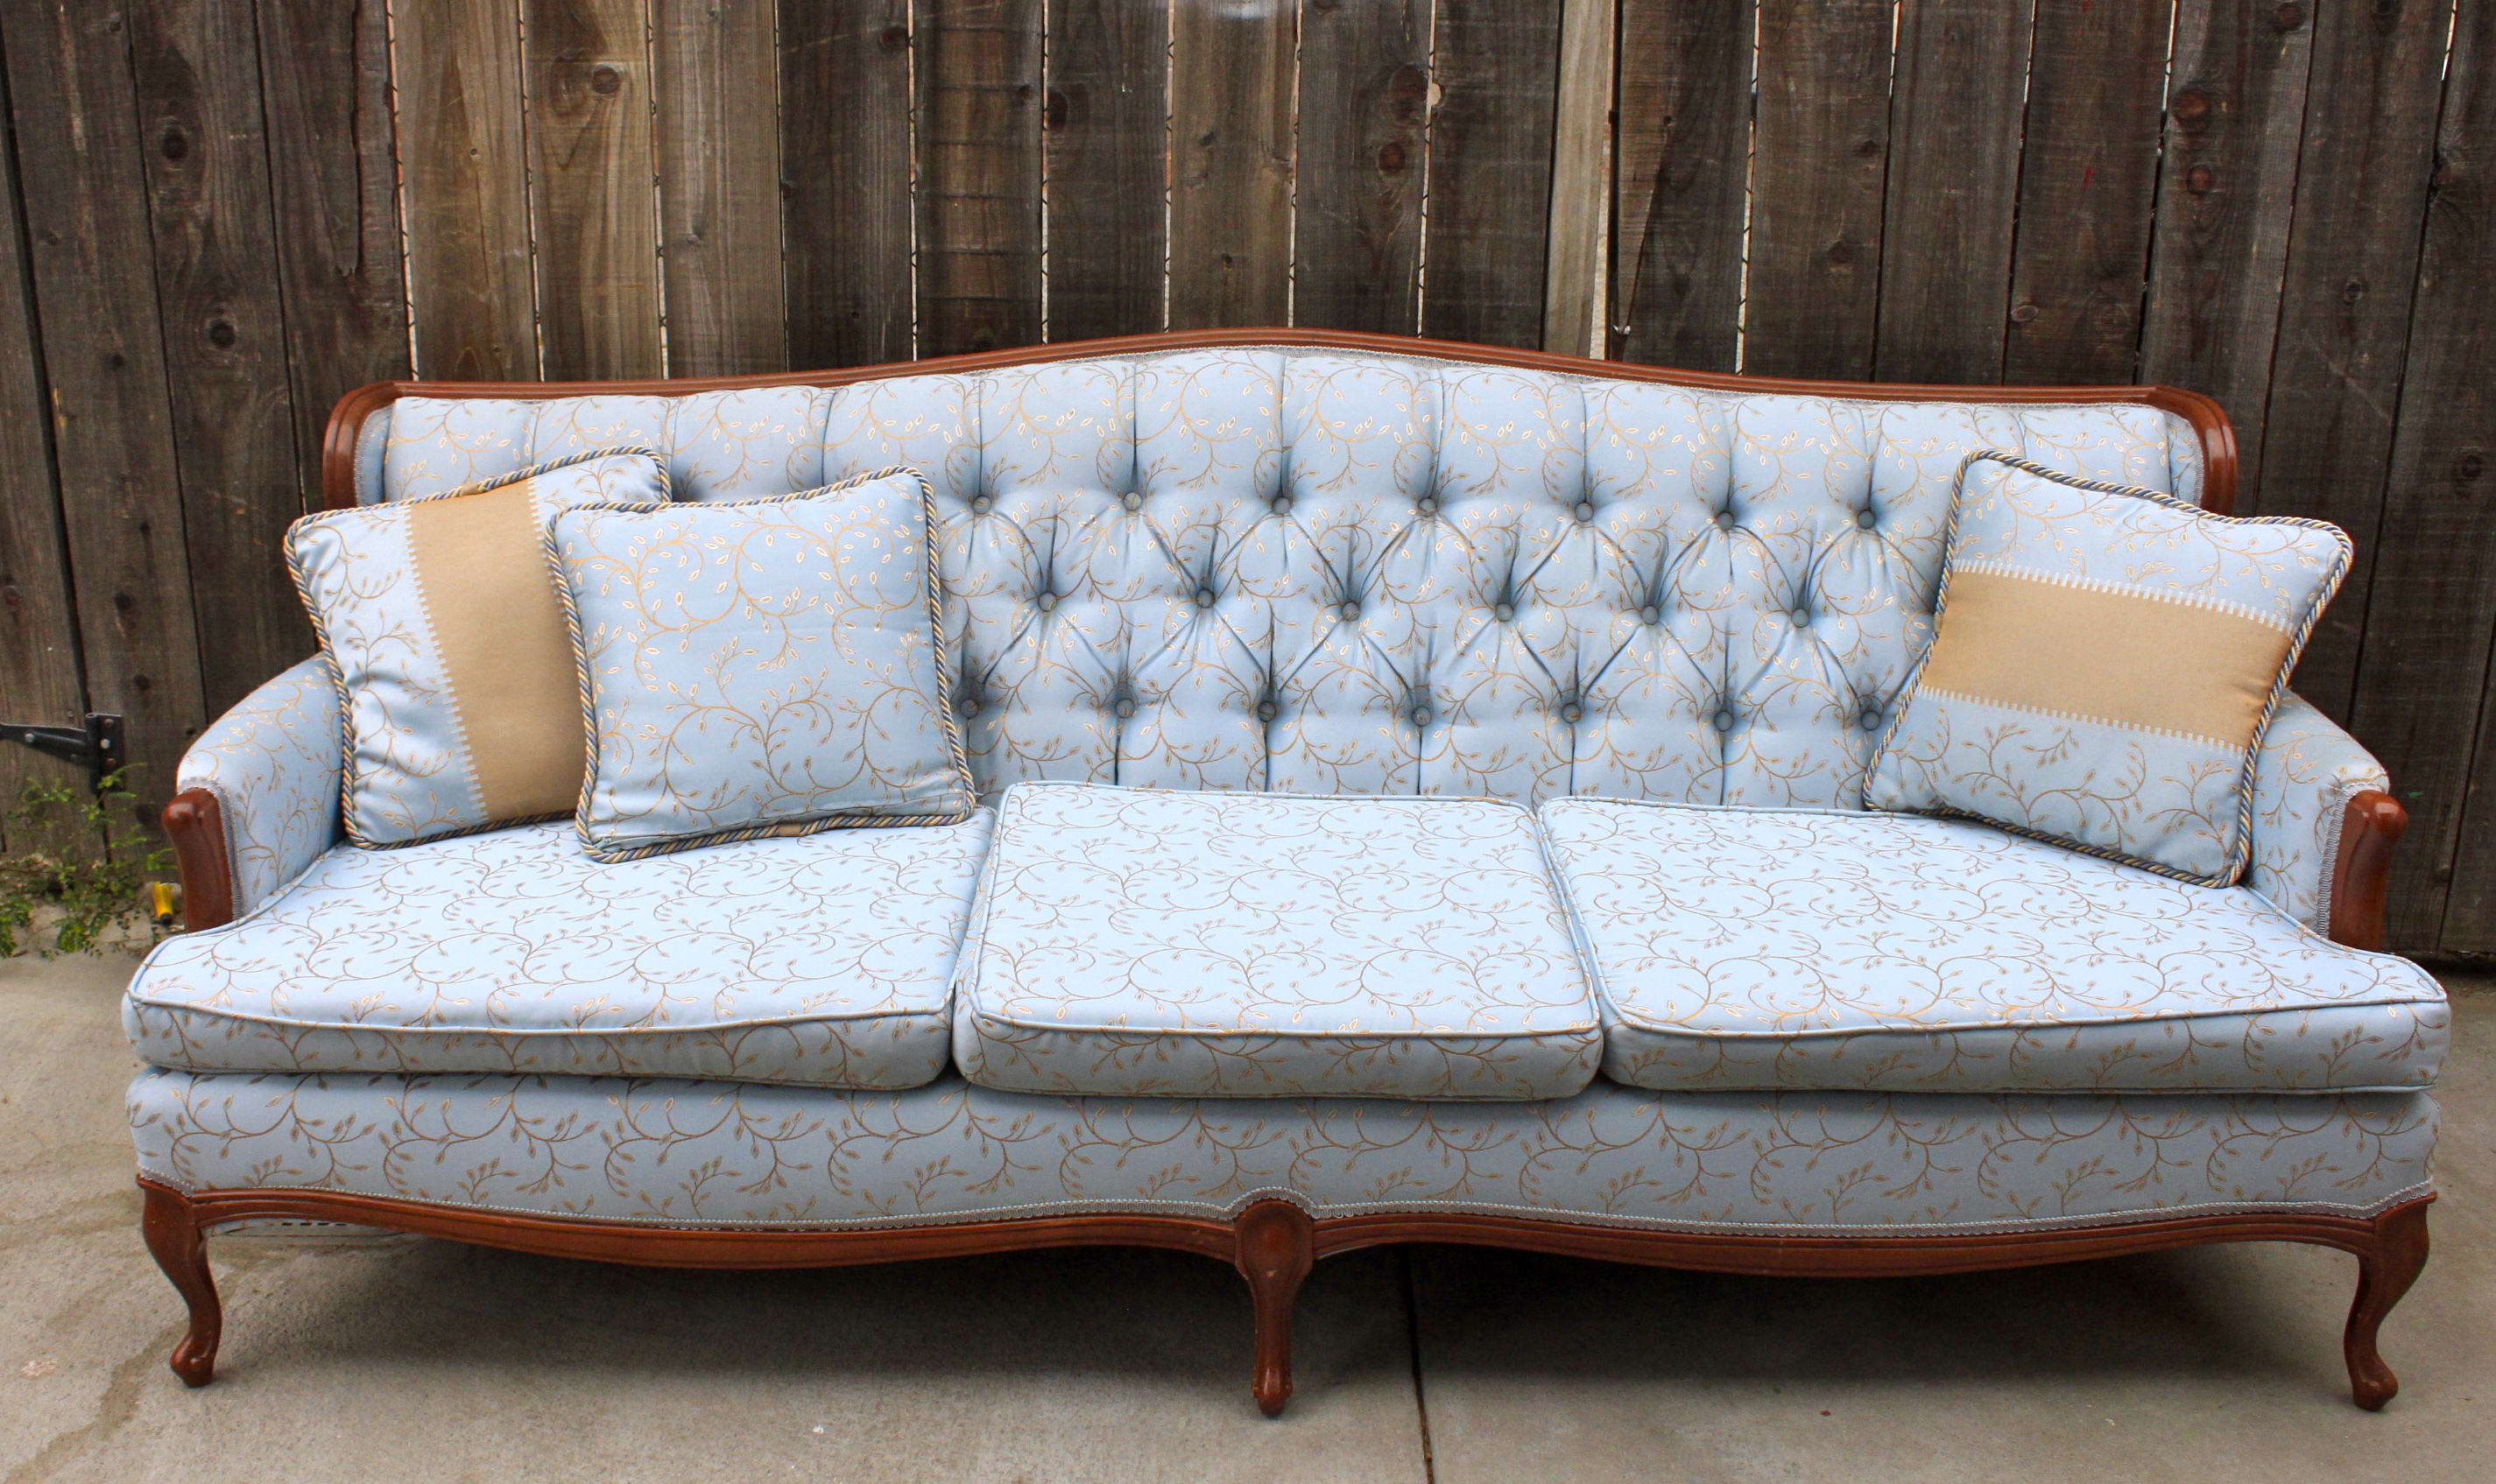 where can i donate my old sofa cinema to find vintage furniture queen b studios